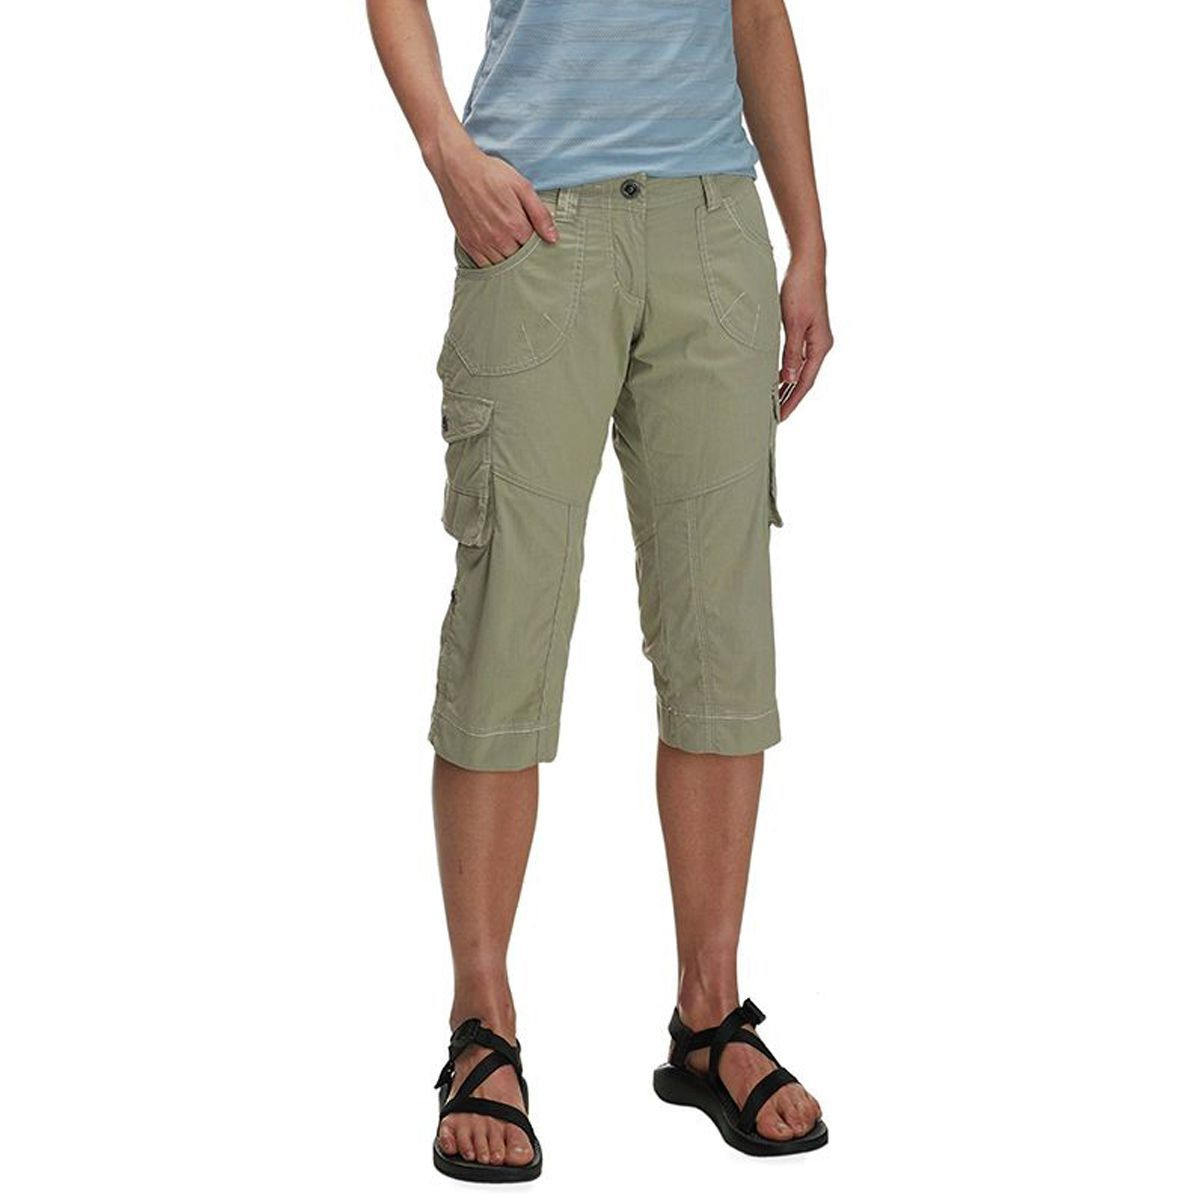 KUHL Kontra 11in Short - Women's